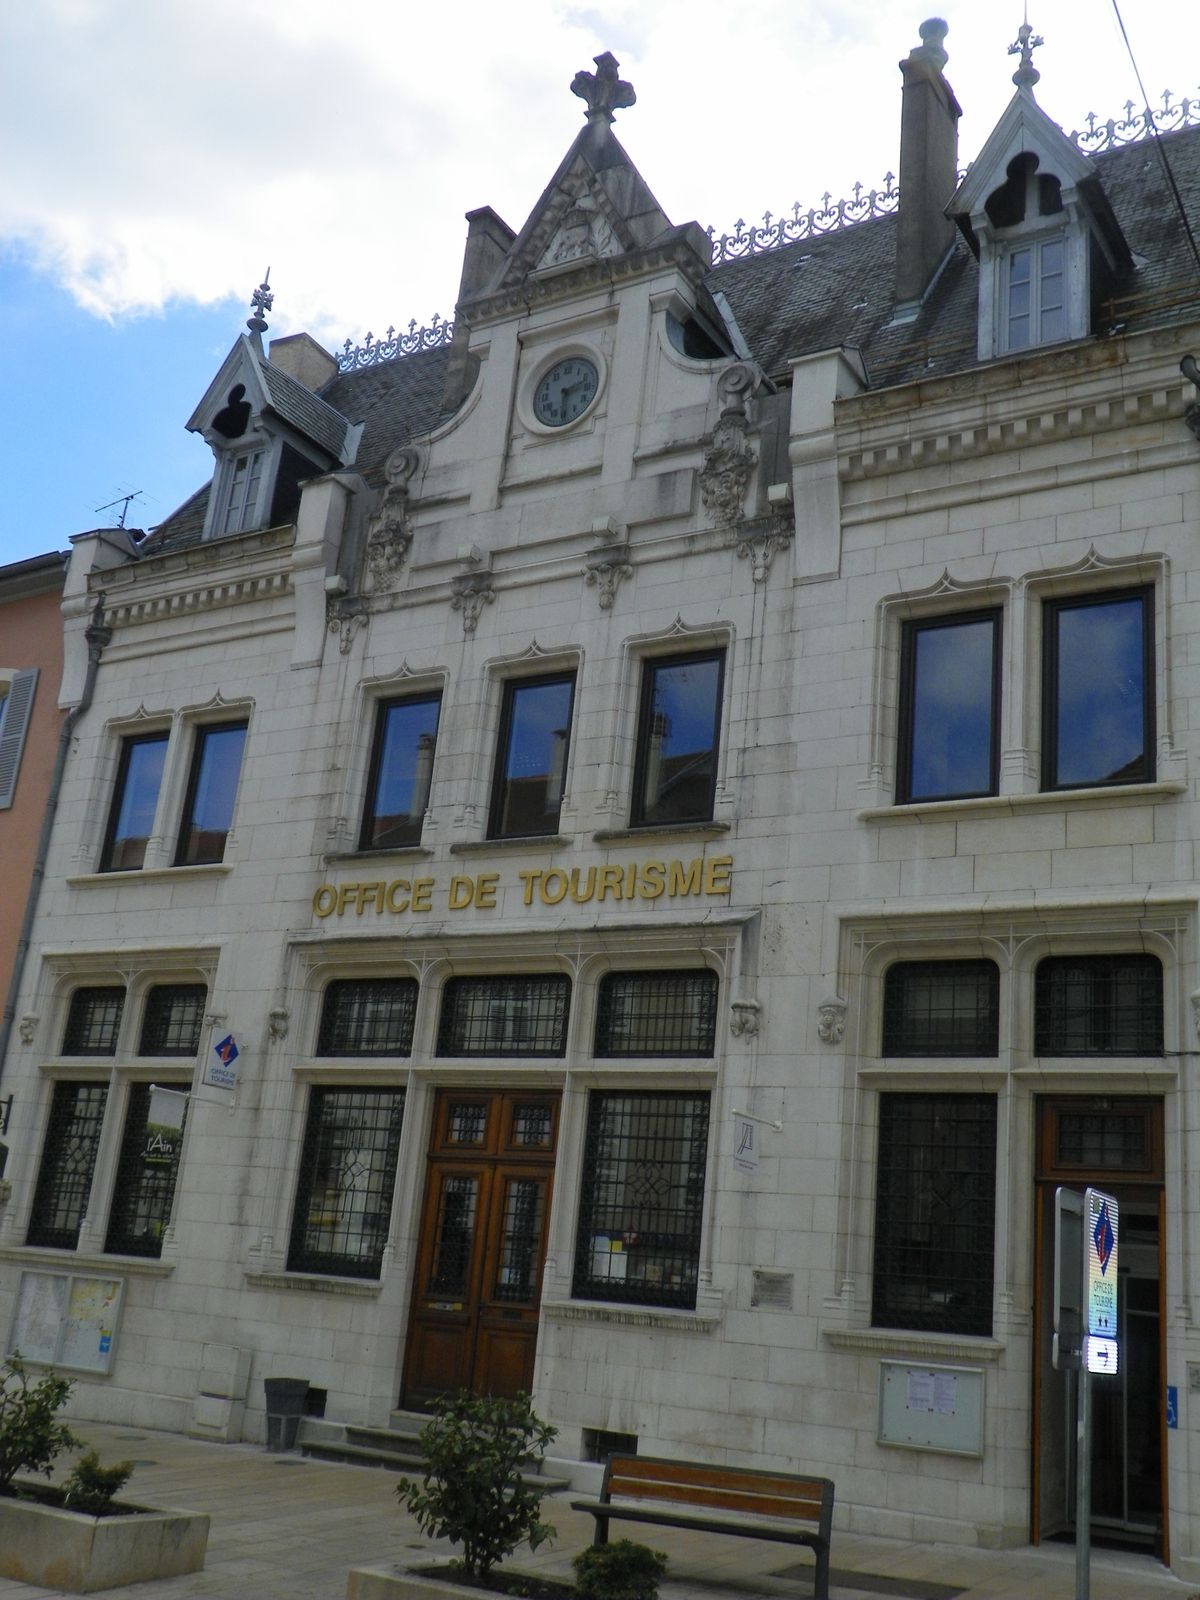 Belley le blog de nathie01300 - Office de tourisme belley ...